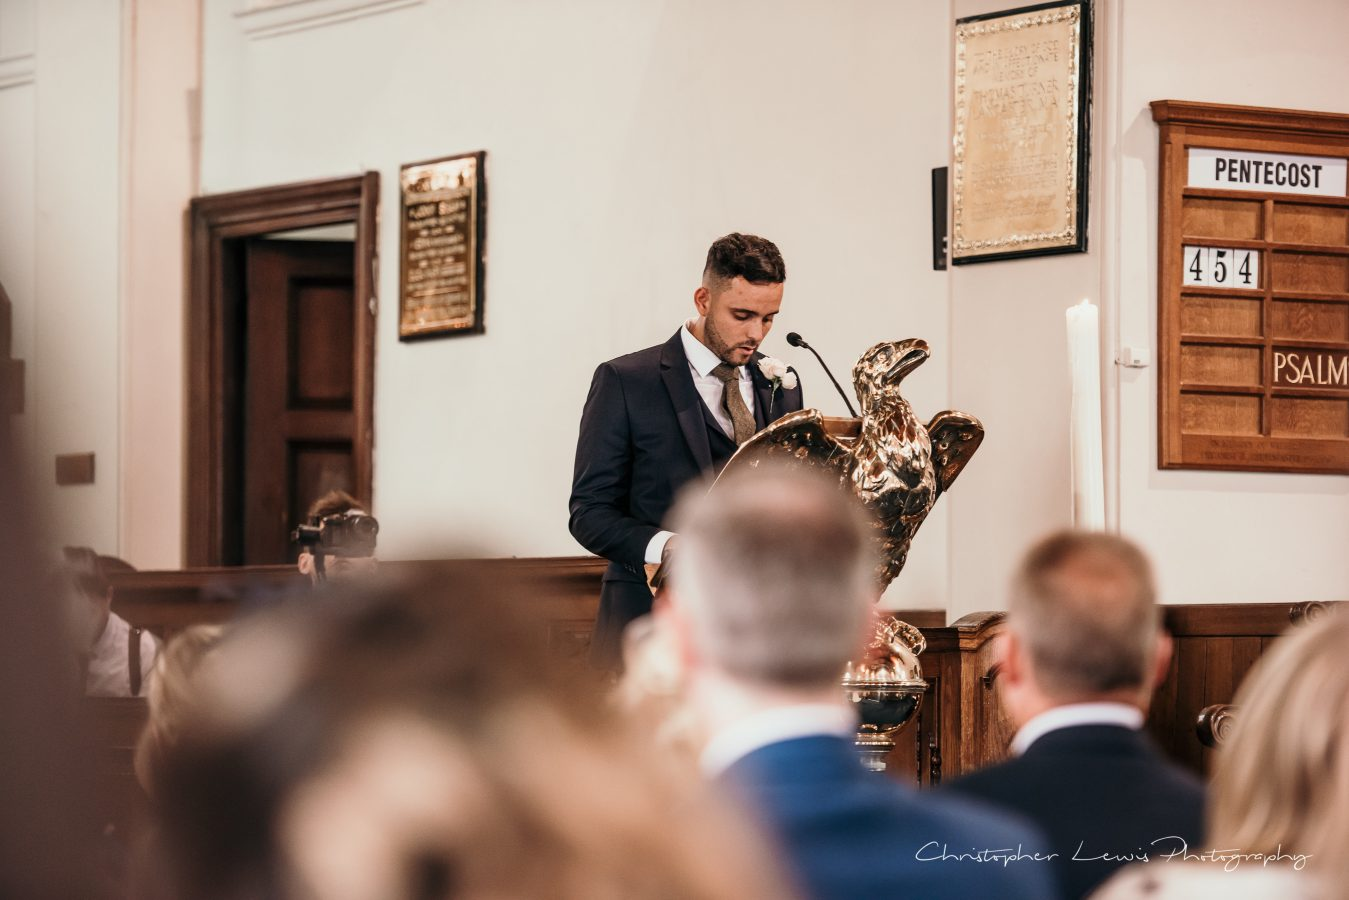 White-Hart-Lydgate-Wedding-Christopher-Lewis-Photography-79